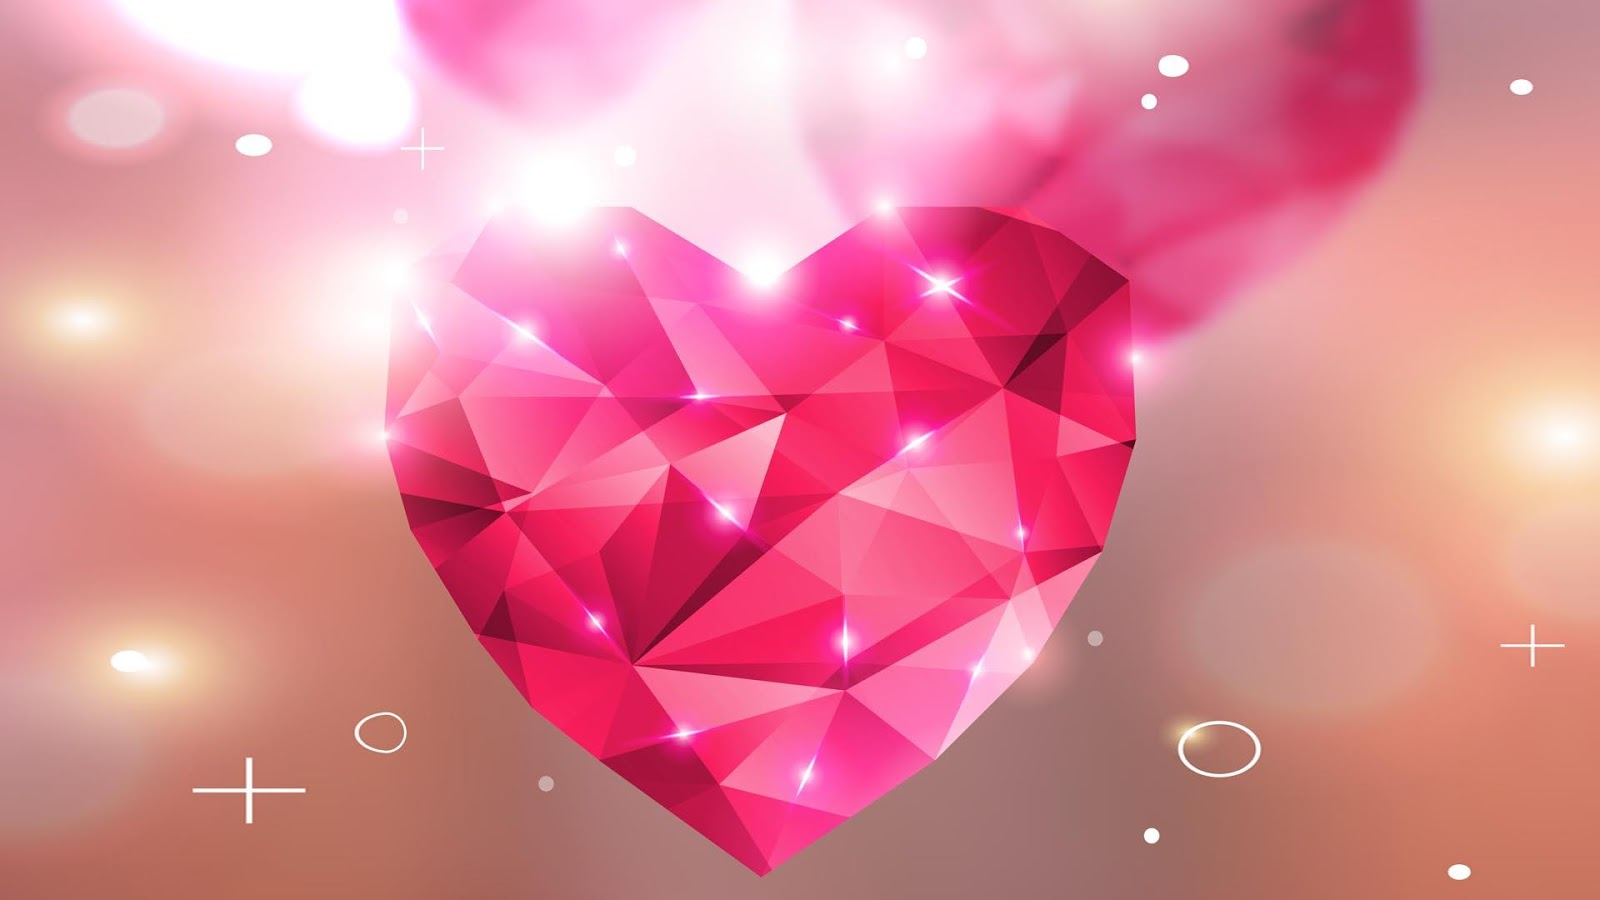 Wallpapers Of Hearts